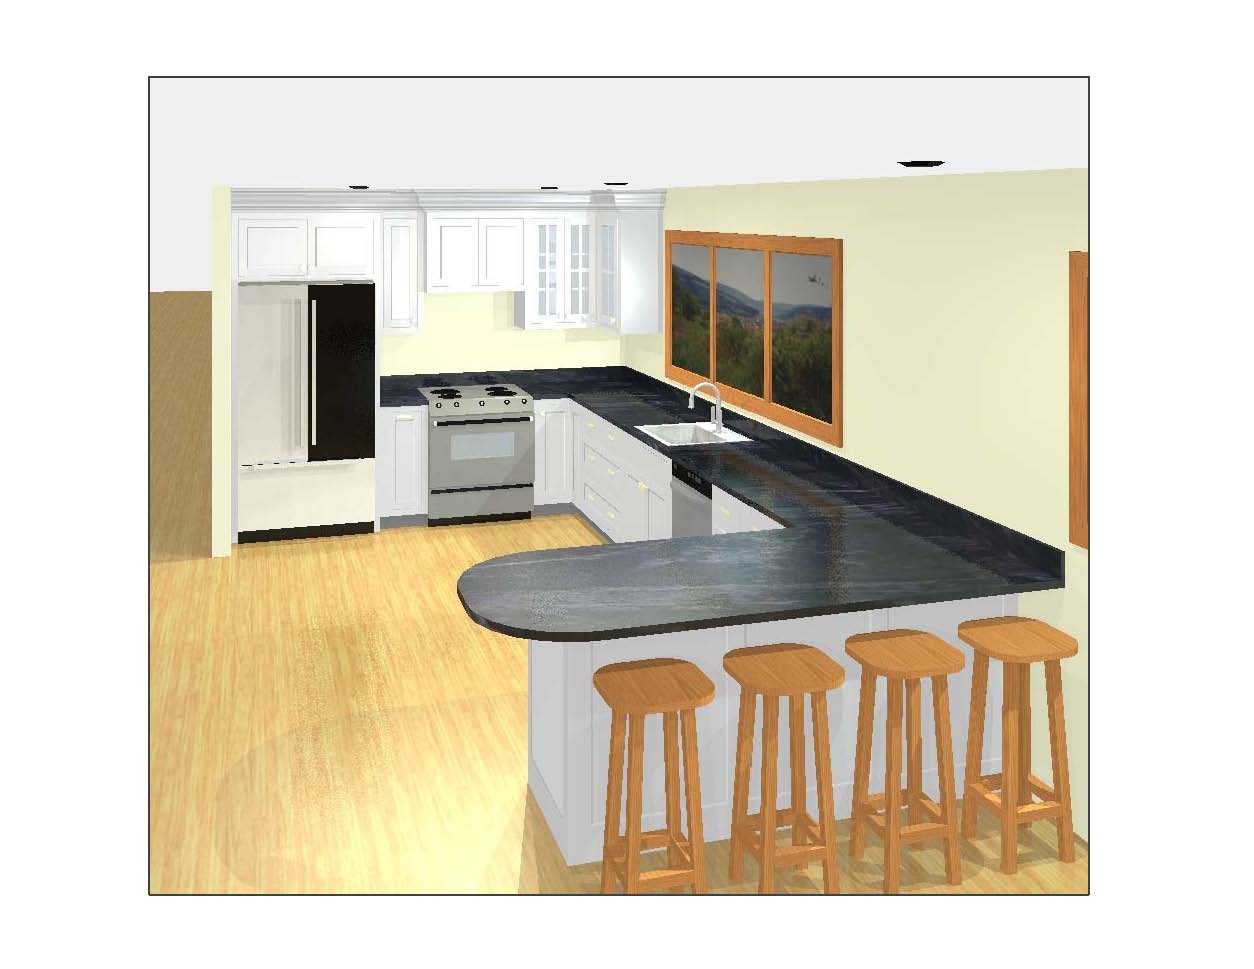 kitchen design vacancies kitchen design obsidiansmaze 567